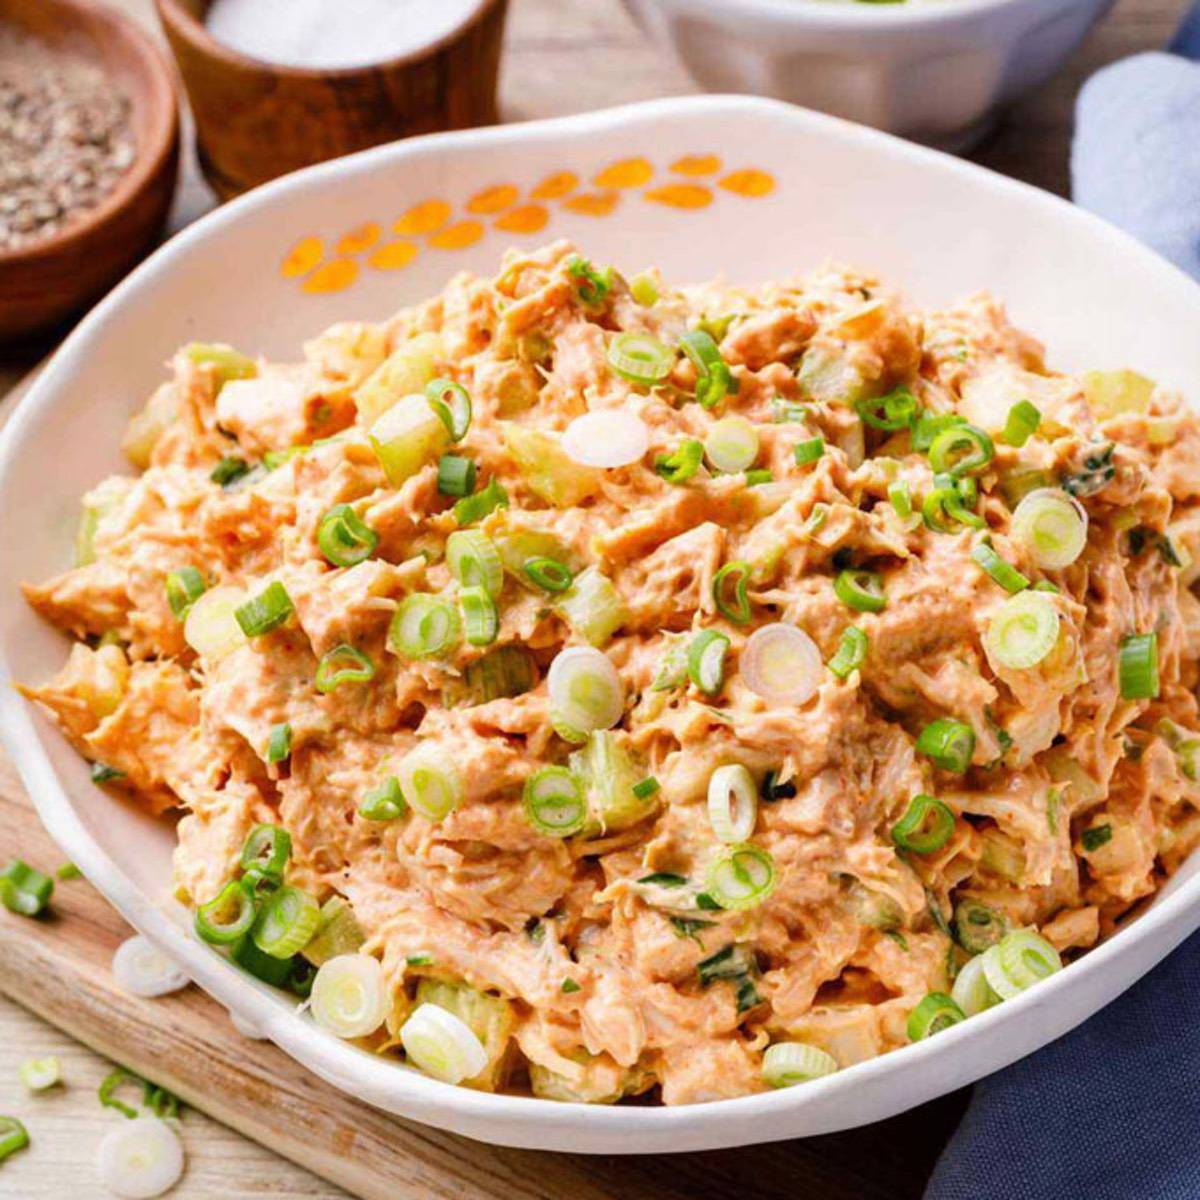 The Most Addictive Buffalo Chicken Salad